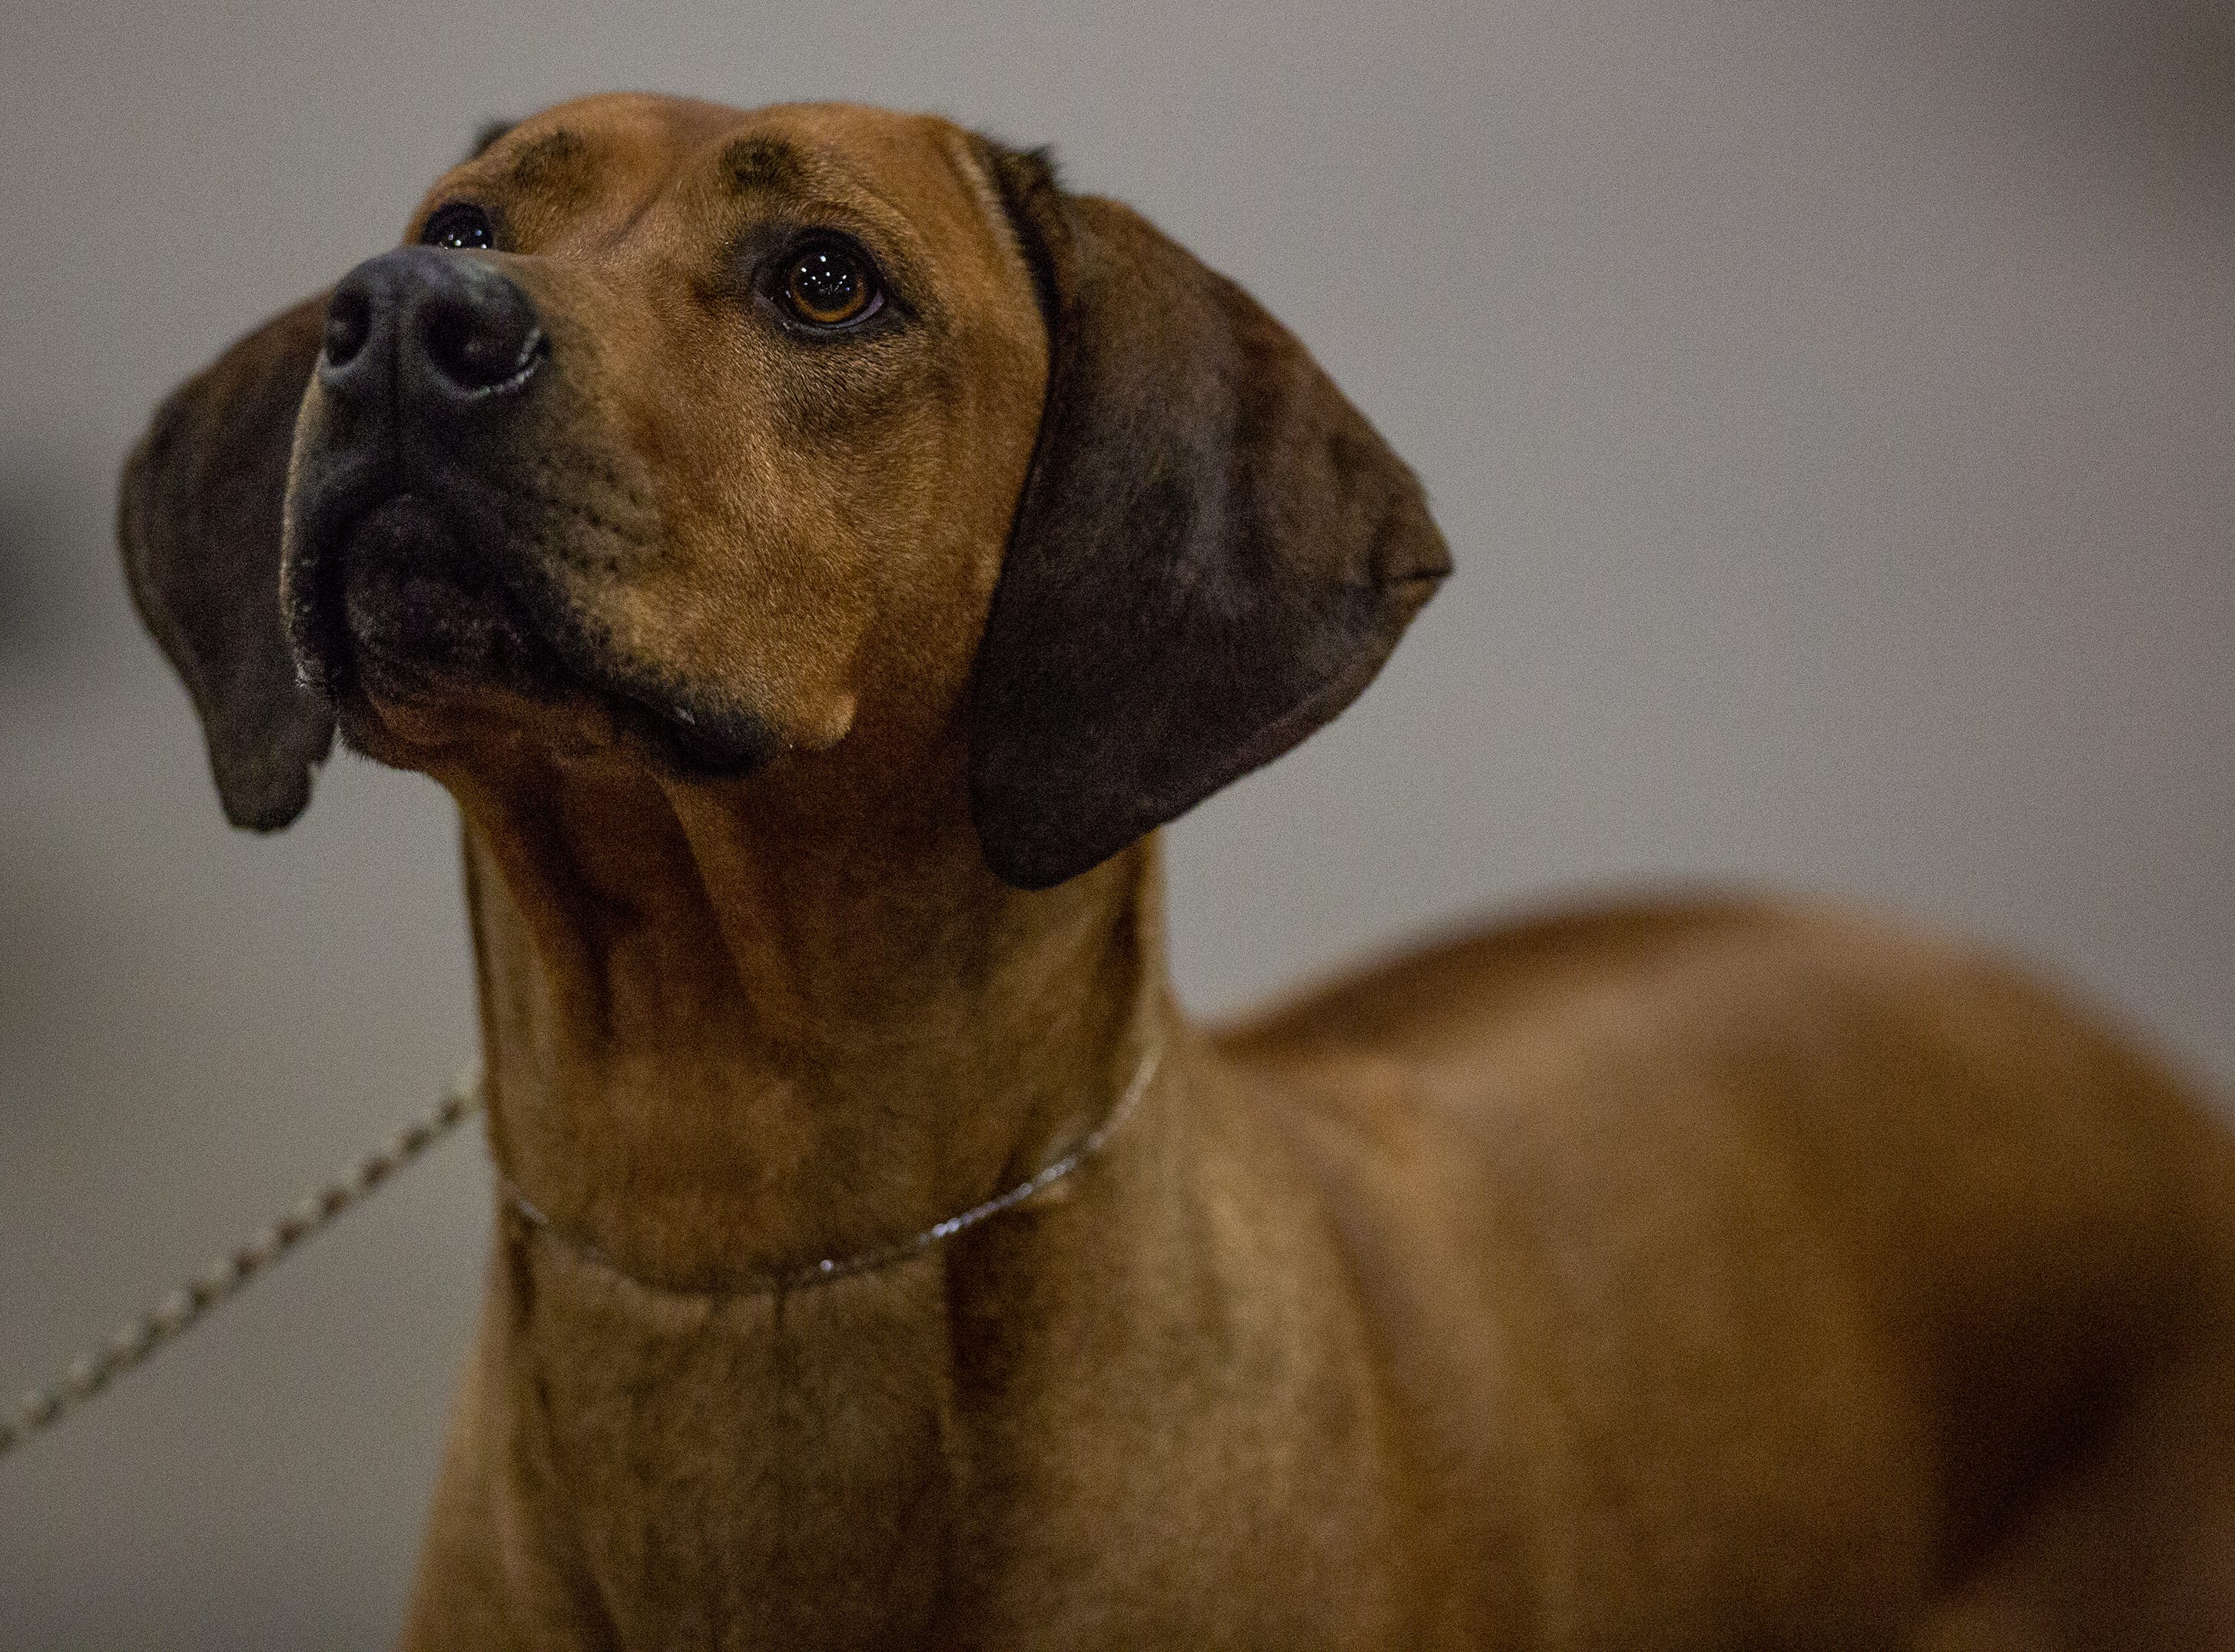 Hisani, a Rhodesian Ridgeback, is focused on getting a treat at the 2019 Kentuckiana Cluster of Dog Shows at the Kentucky Exposition Center. March 14, 2019.